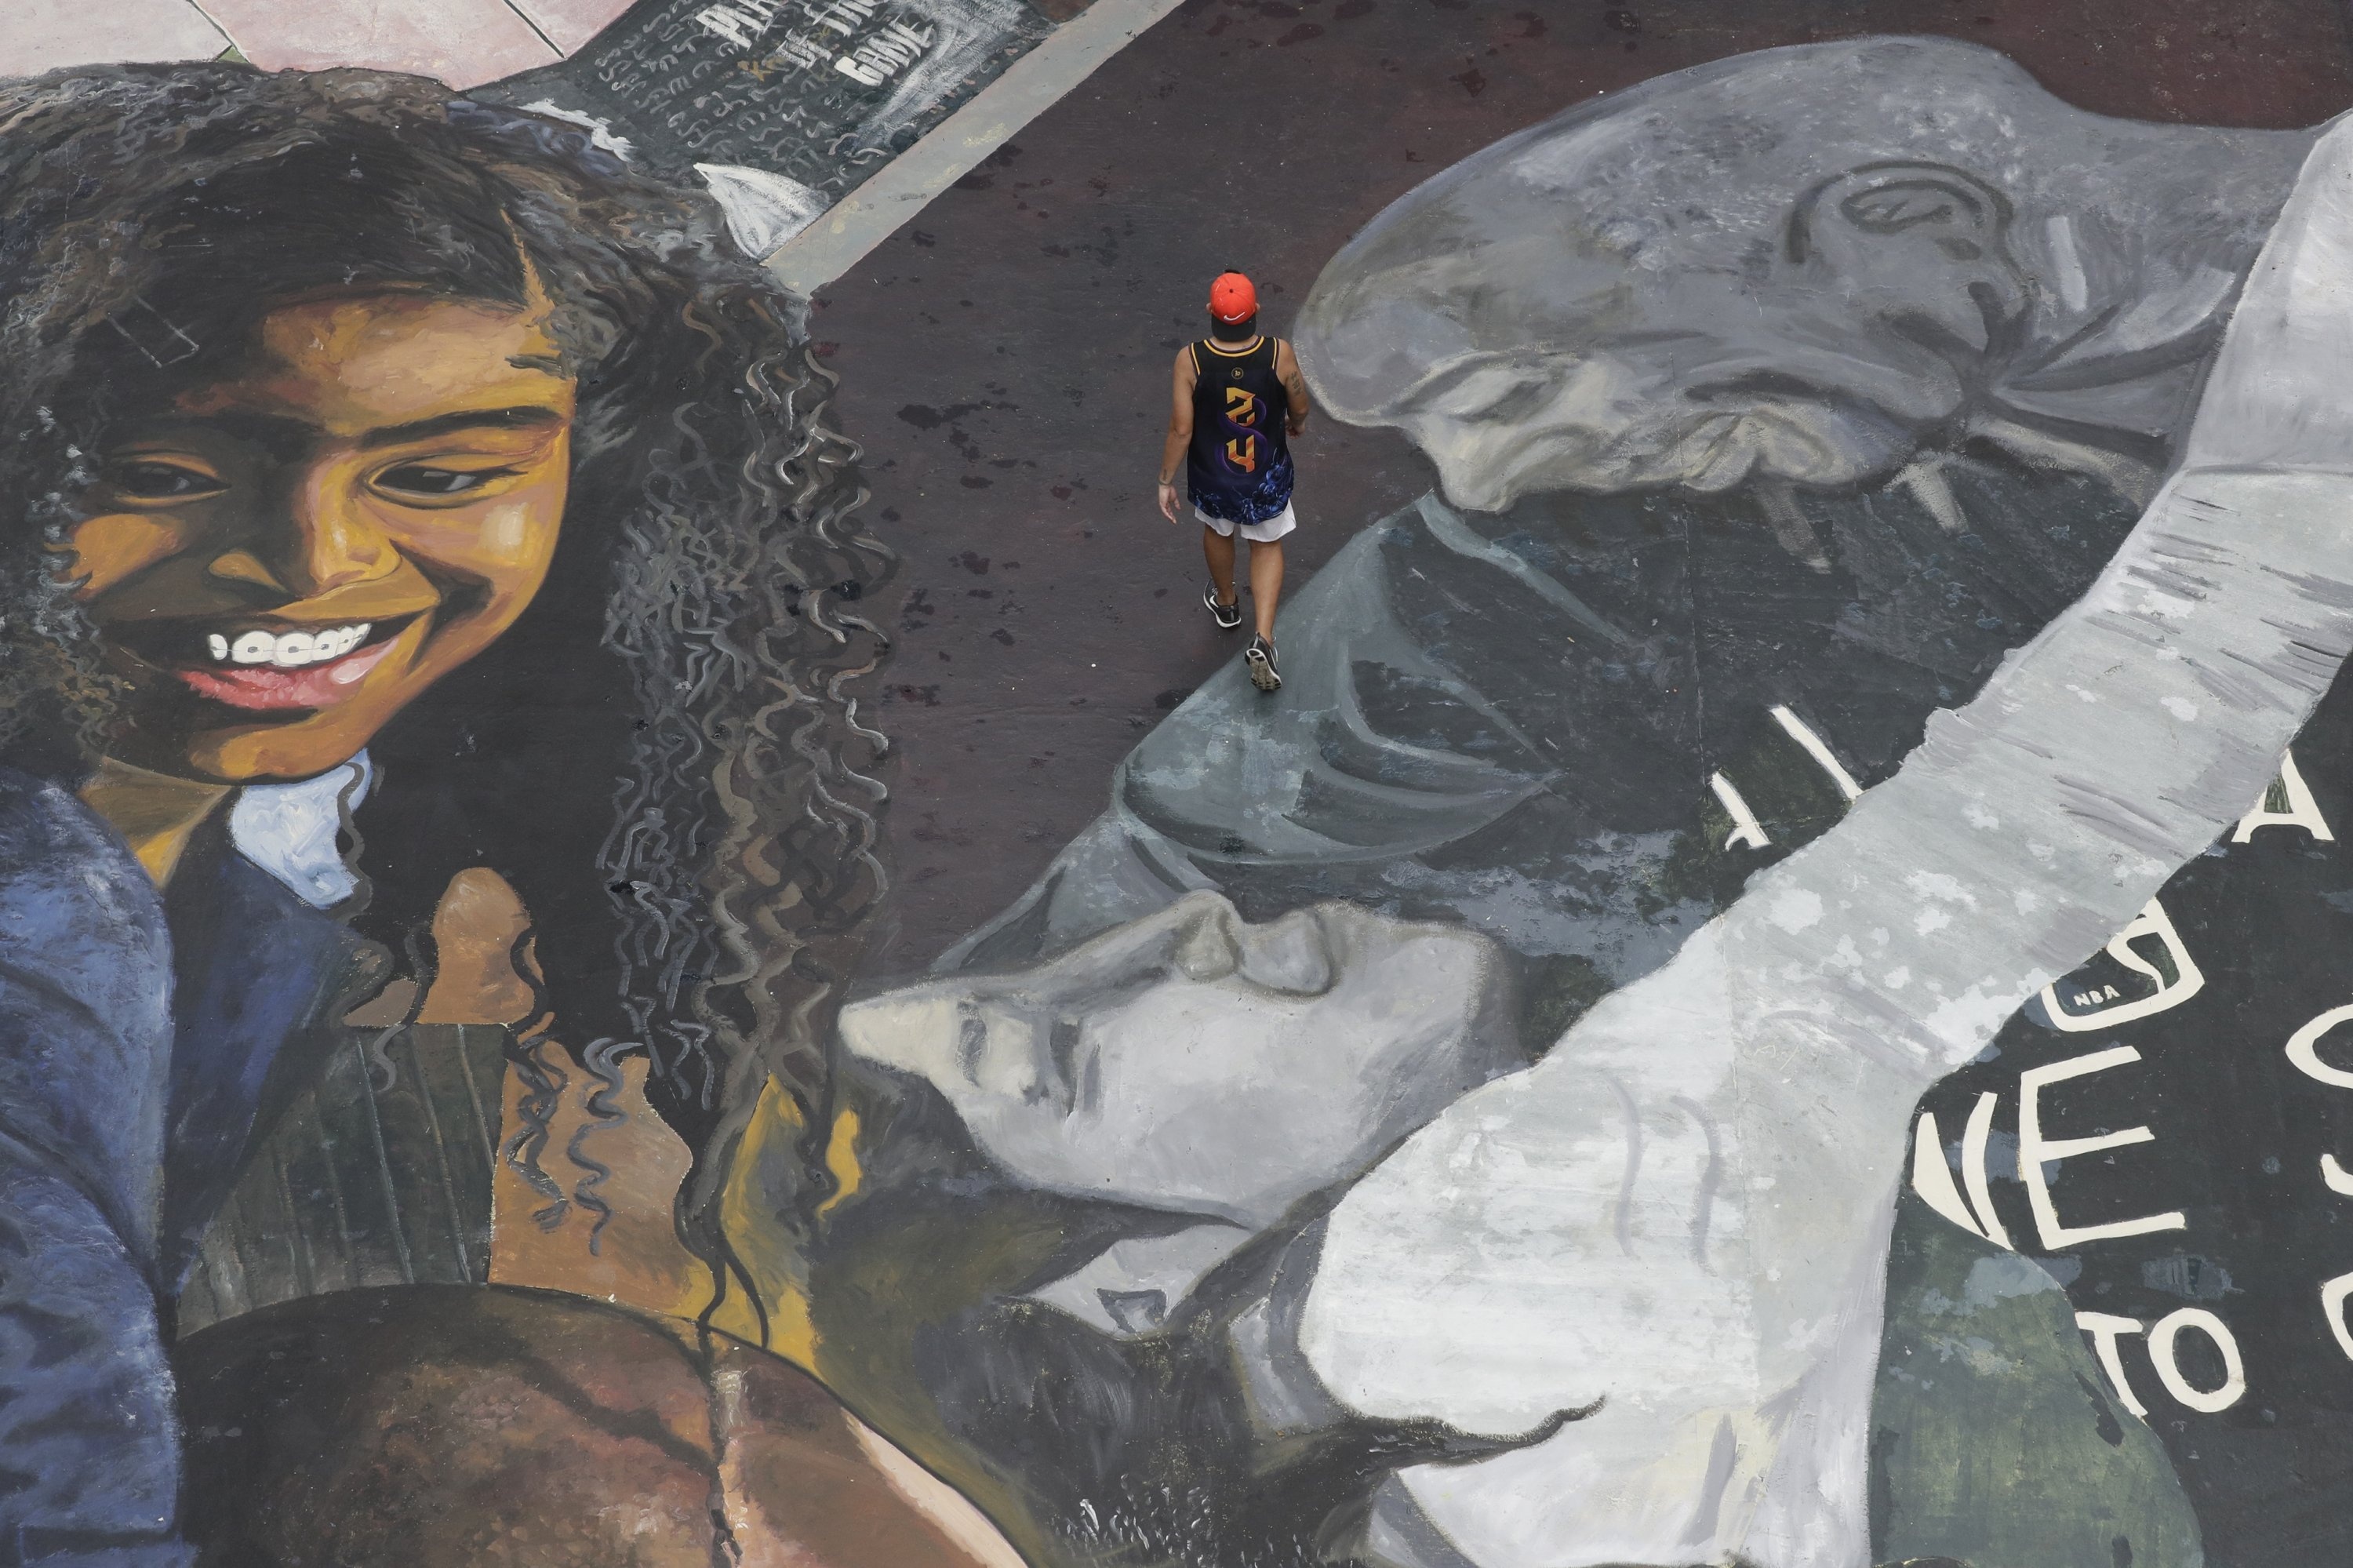 A man walks on a giant mural of former NBA basketball player Kobe Bryant and daughter Gianna on a basketball court at a tenement building in Taguig, Philippines, Jan. 26, 2021. (AP Photo)